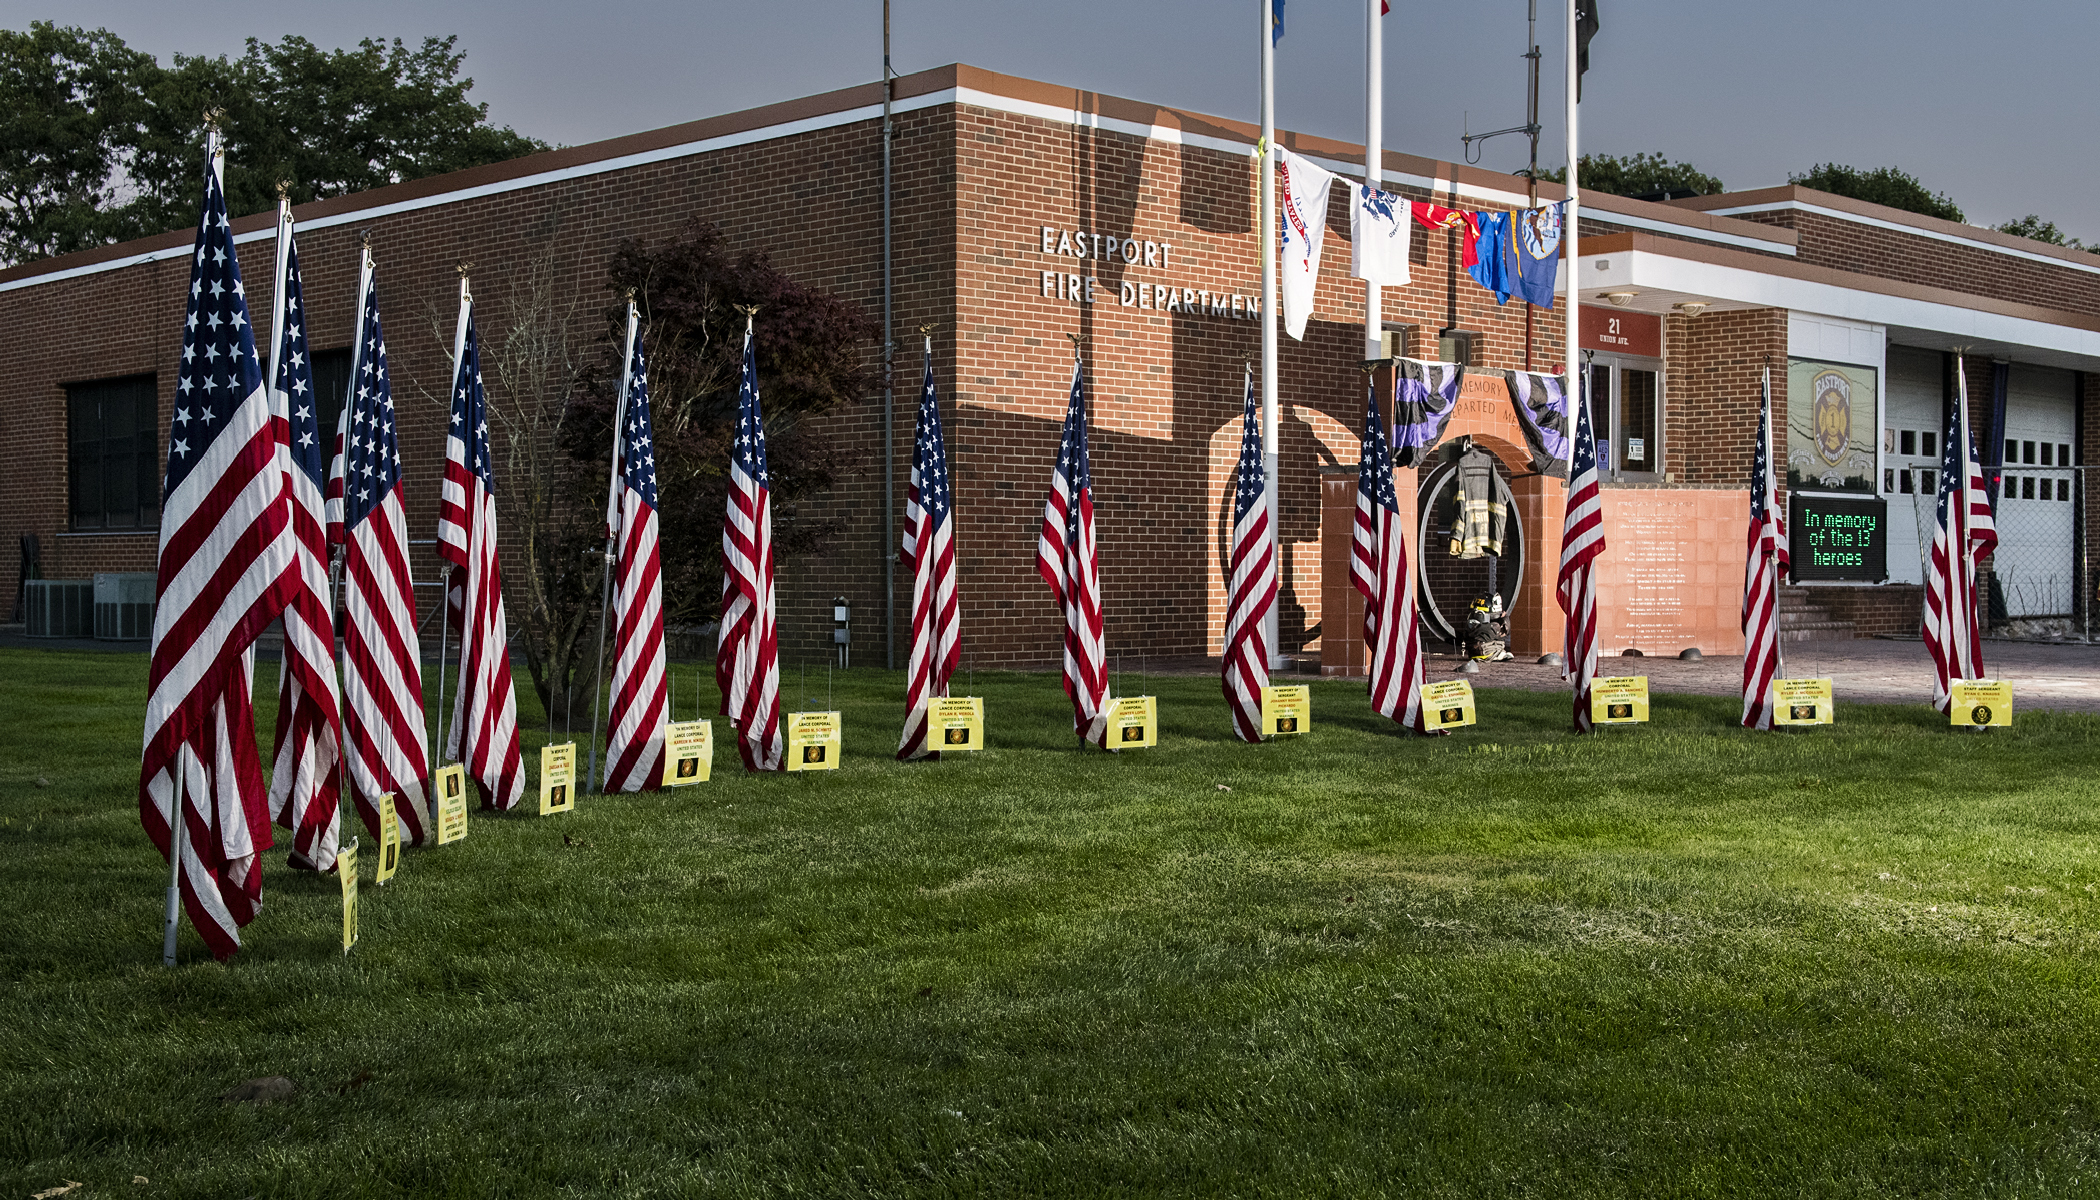 Members of the Eastport Fire Department installed a flag display in front of its firehouse last week. The display honors the one U.S. Navy sailor, one Army soldier, and 11 U.S. Marines killed protecting Americans and Afghan allies in Kabul last week.